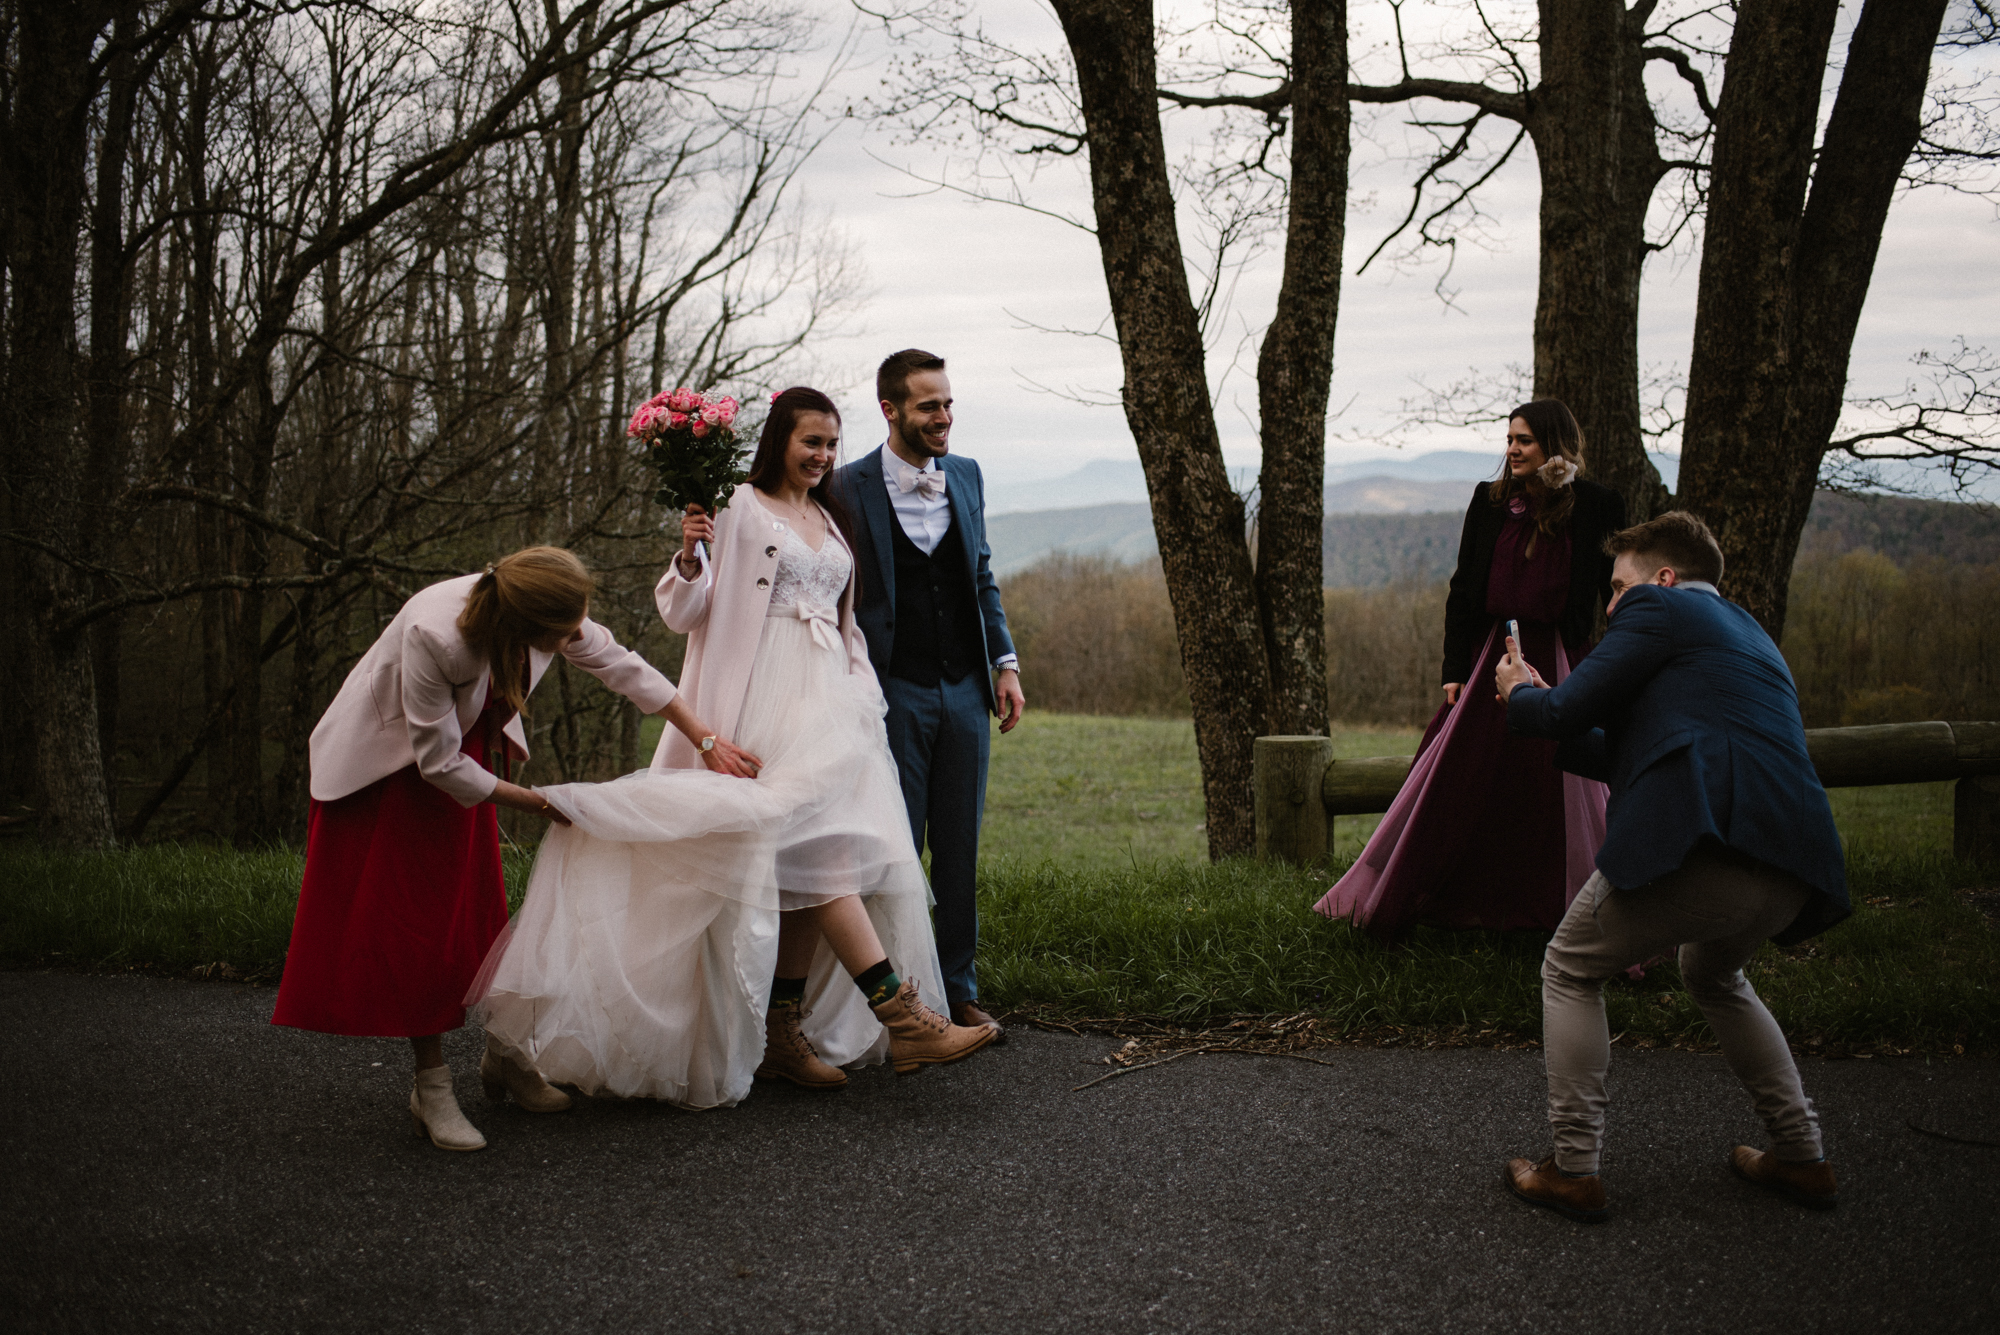 Paula and Andrew - Small Adventurous Wedding in Shenandoah National Park - Blue Ridge Mountain Wedding - White Sails Creative - Mountain Elopement_32.jpg